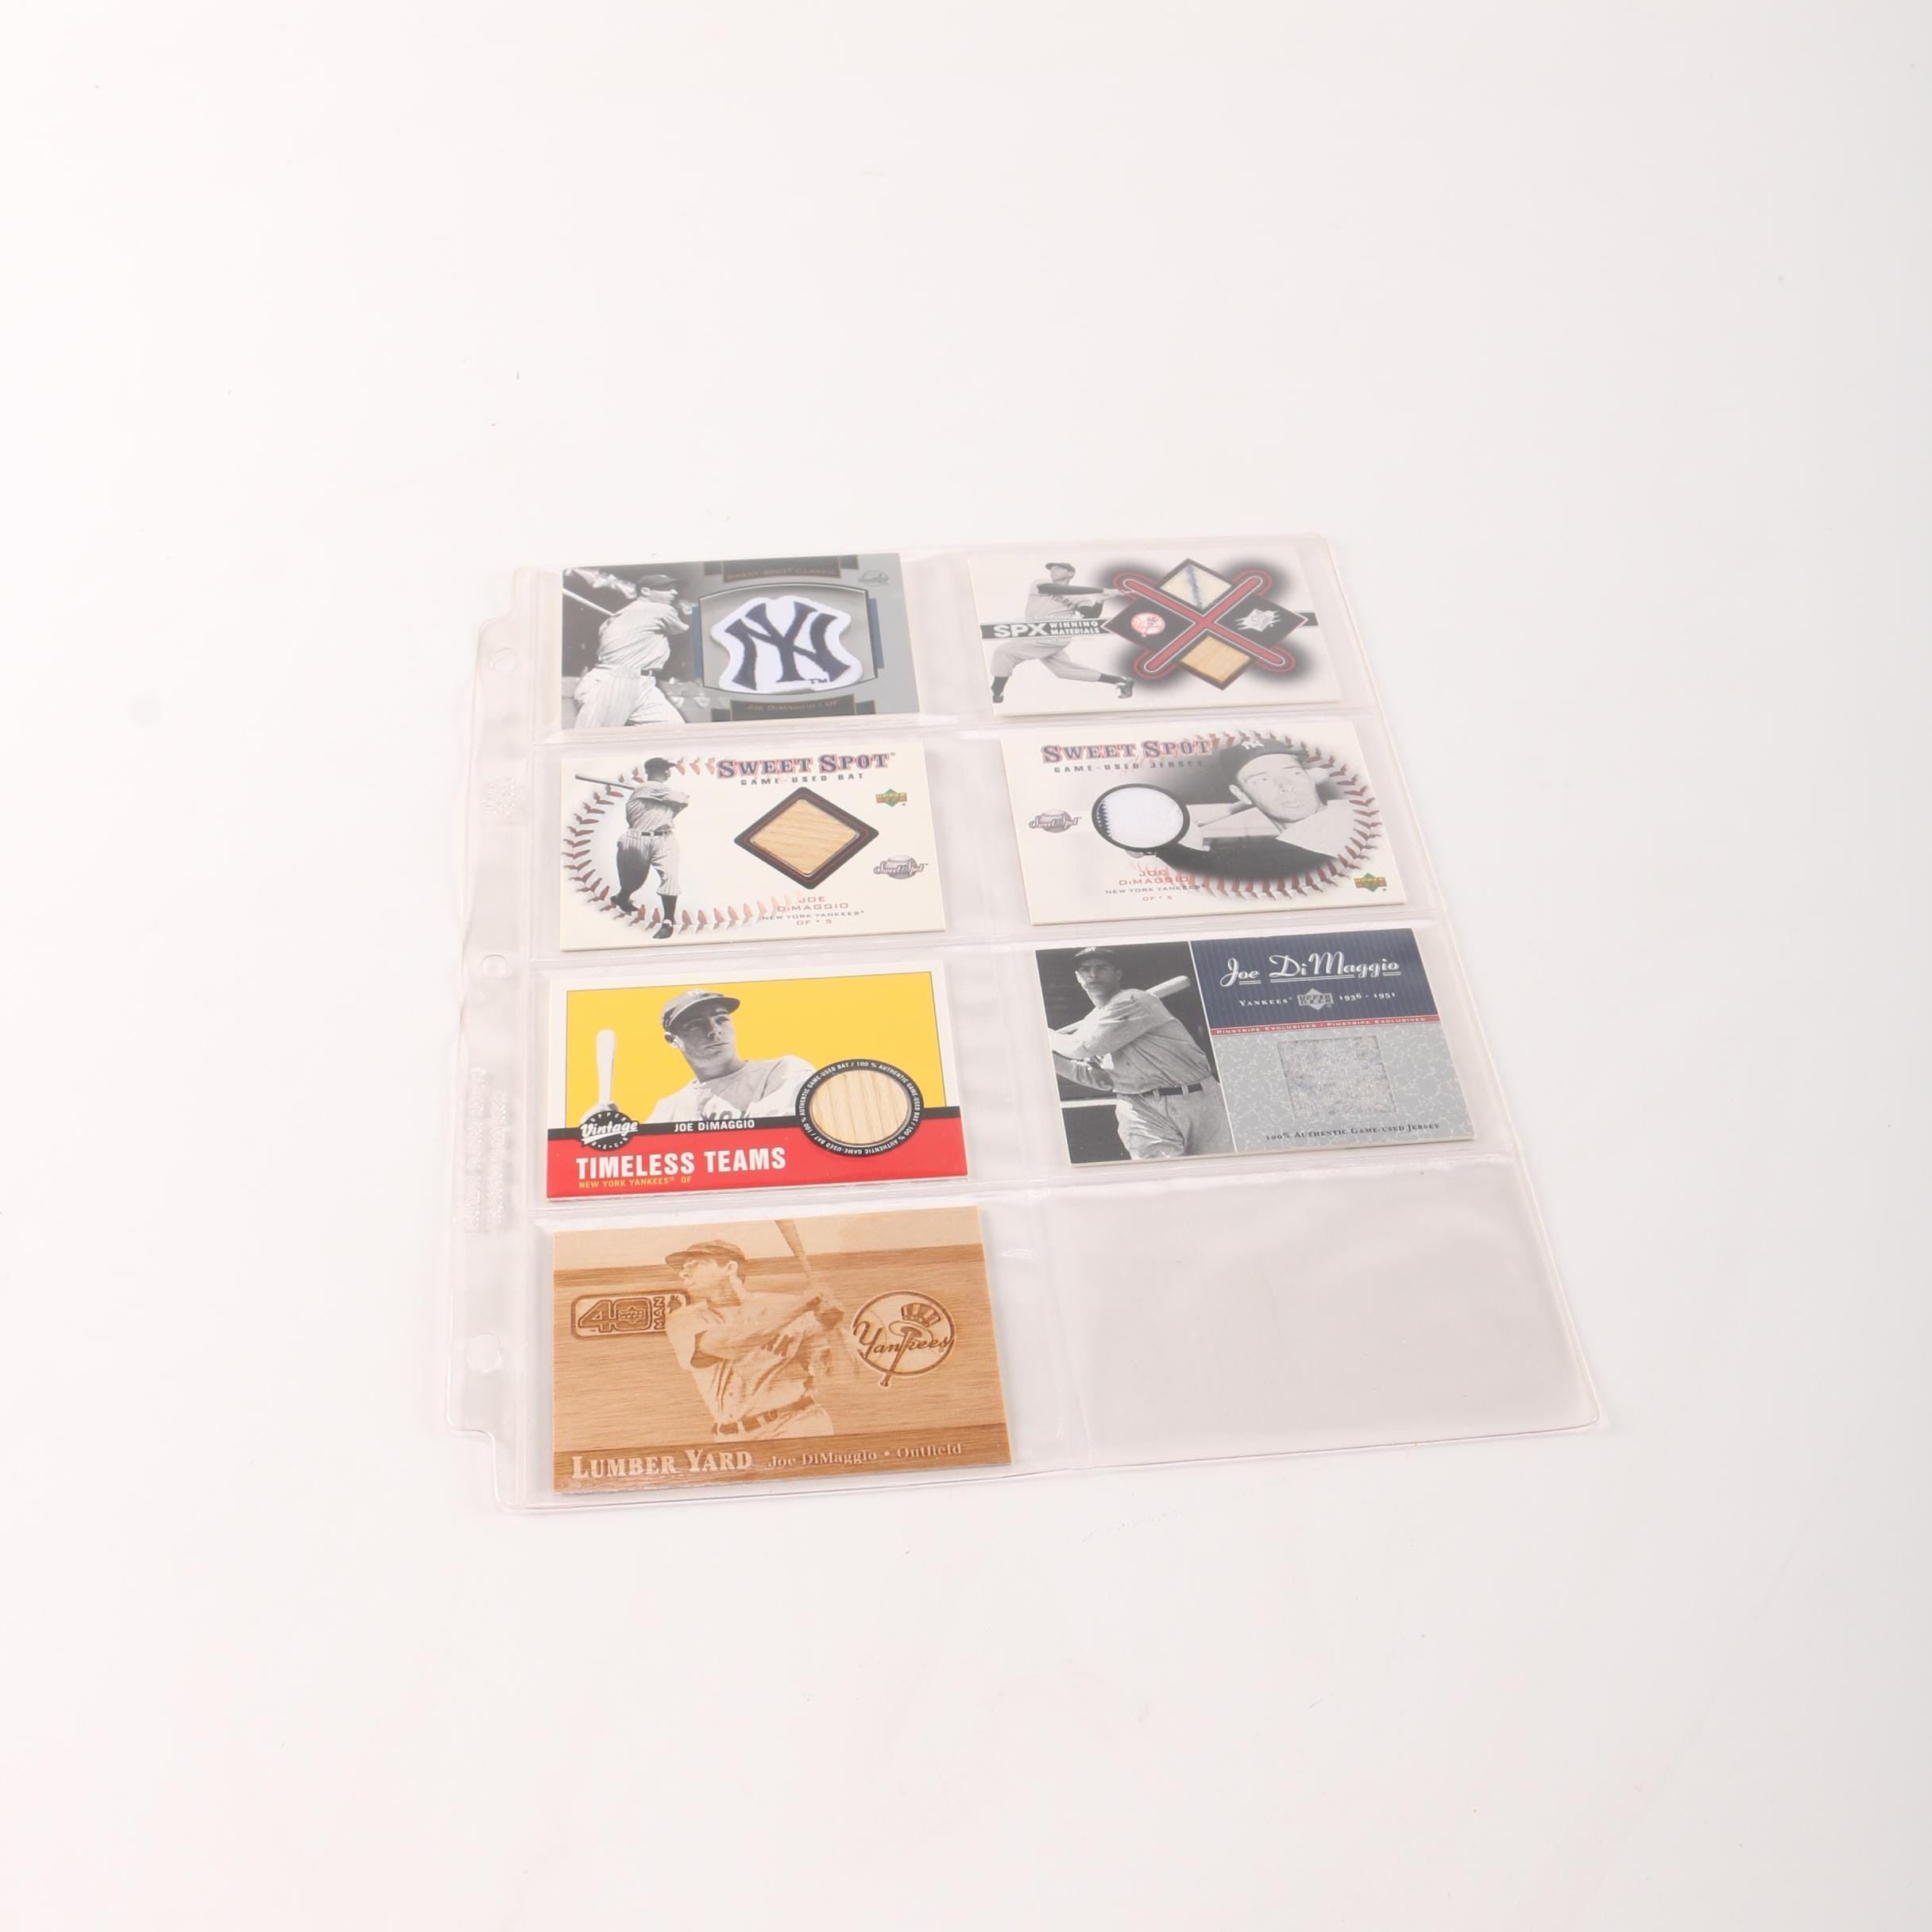 2000s Upper Deck Joe DiMaggio Baseball Cards Featuring Game-Used Materials